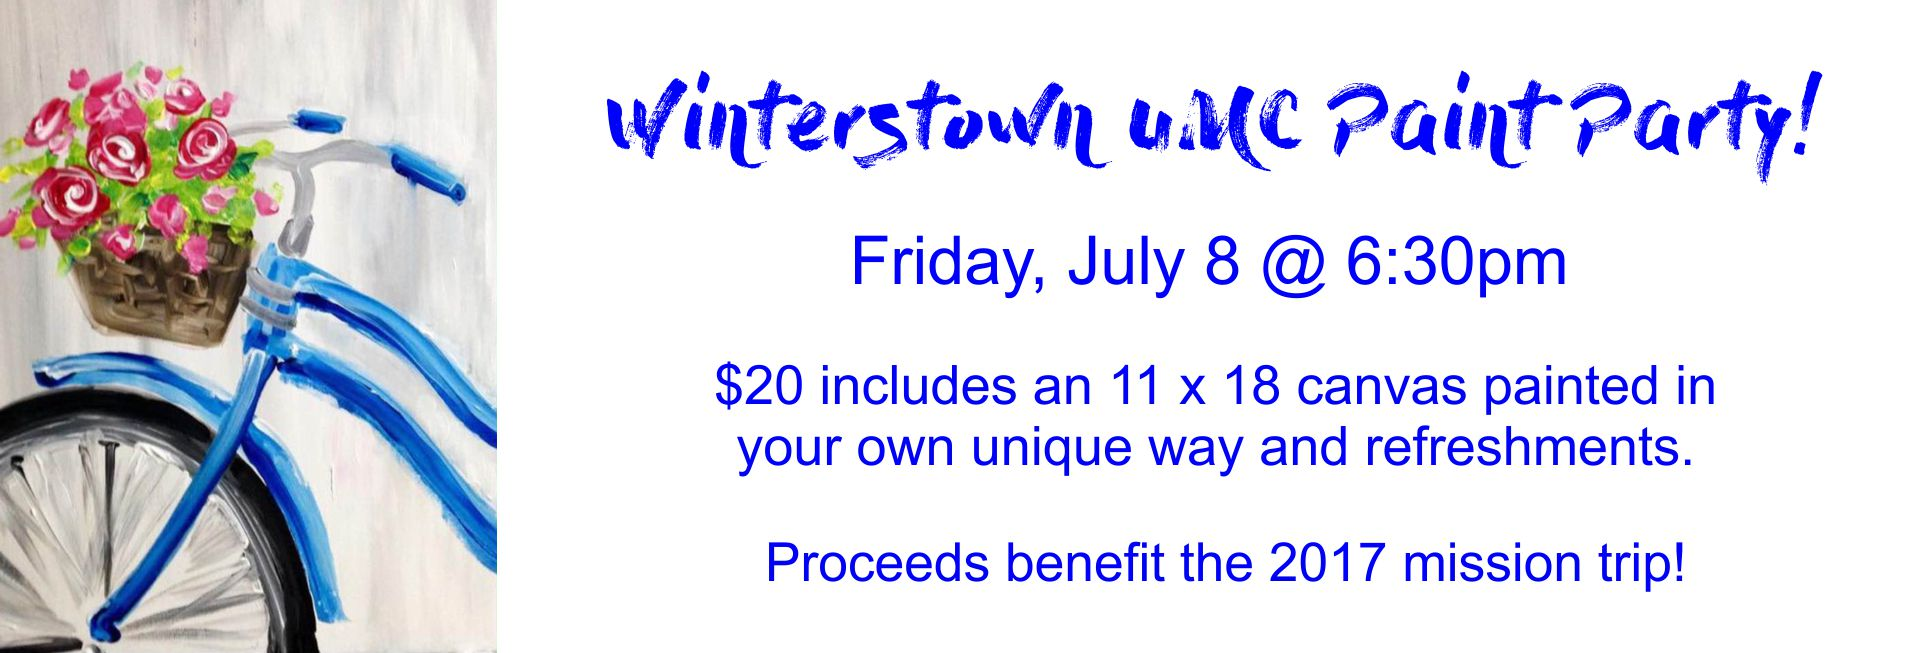 Winterstown UMC Paint Party!